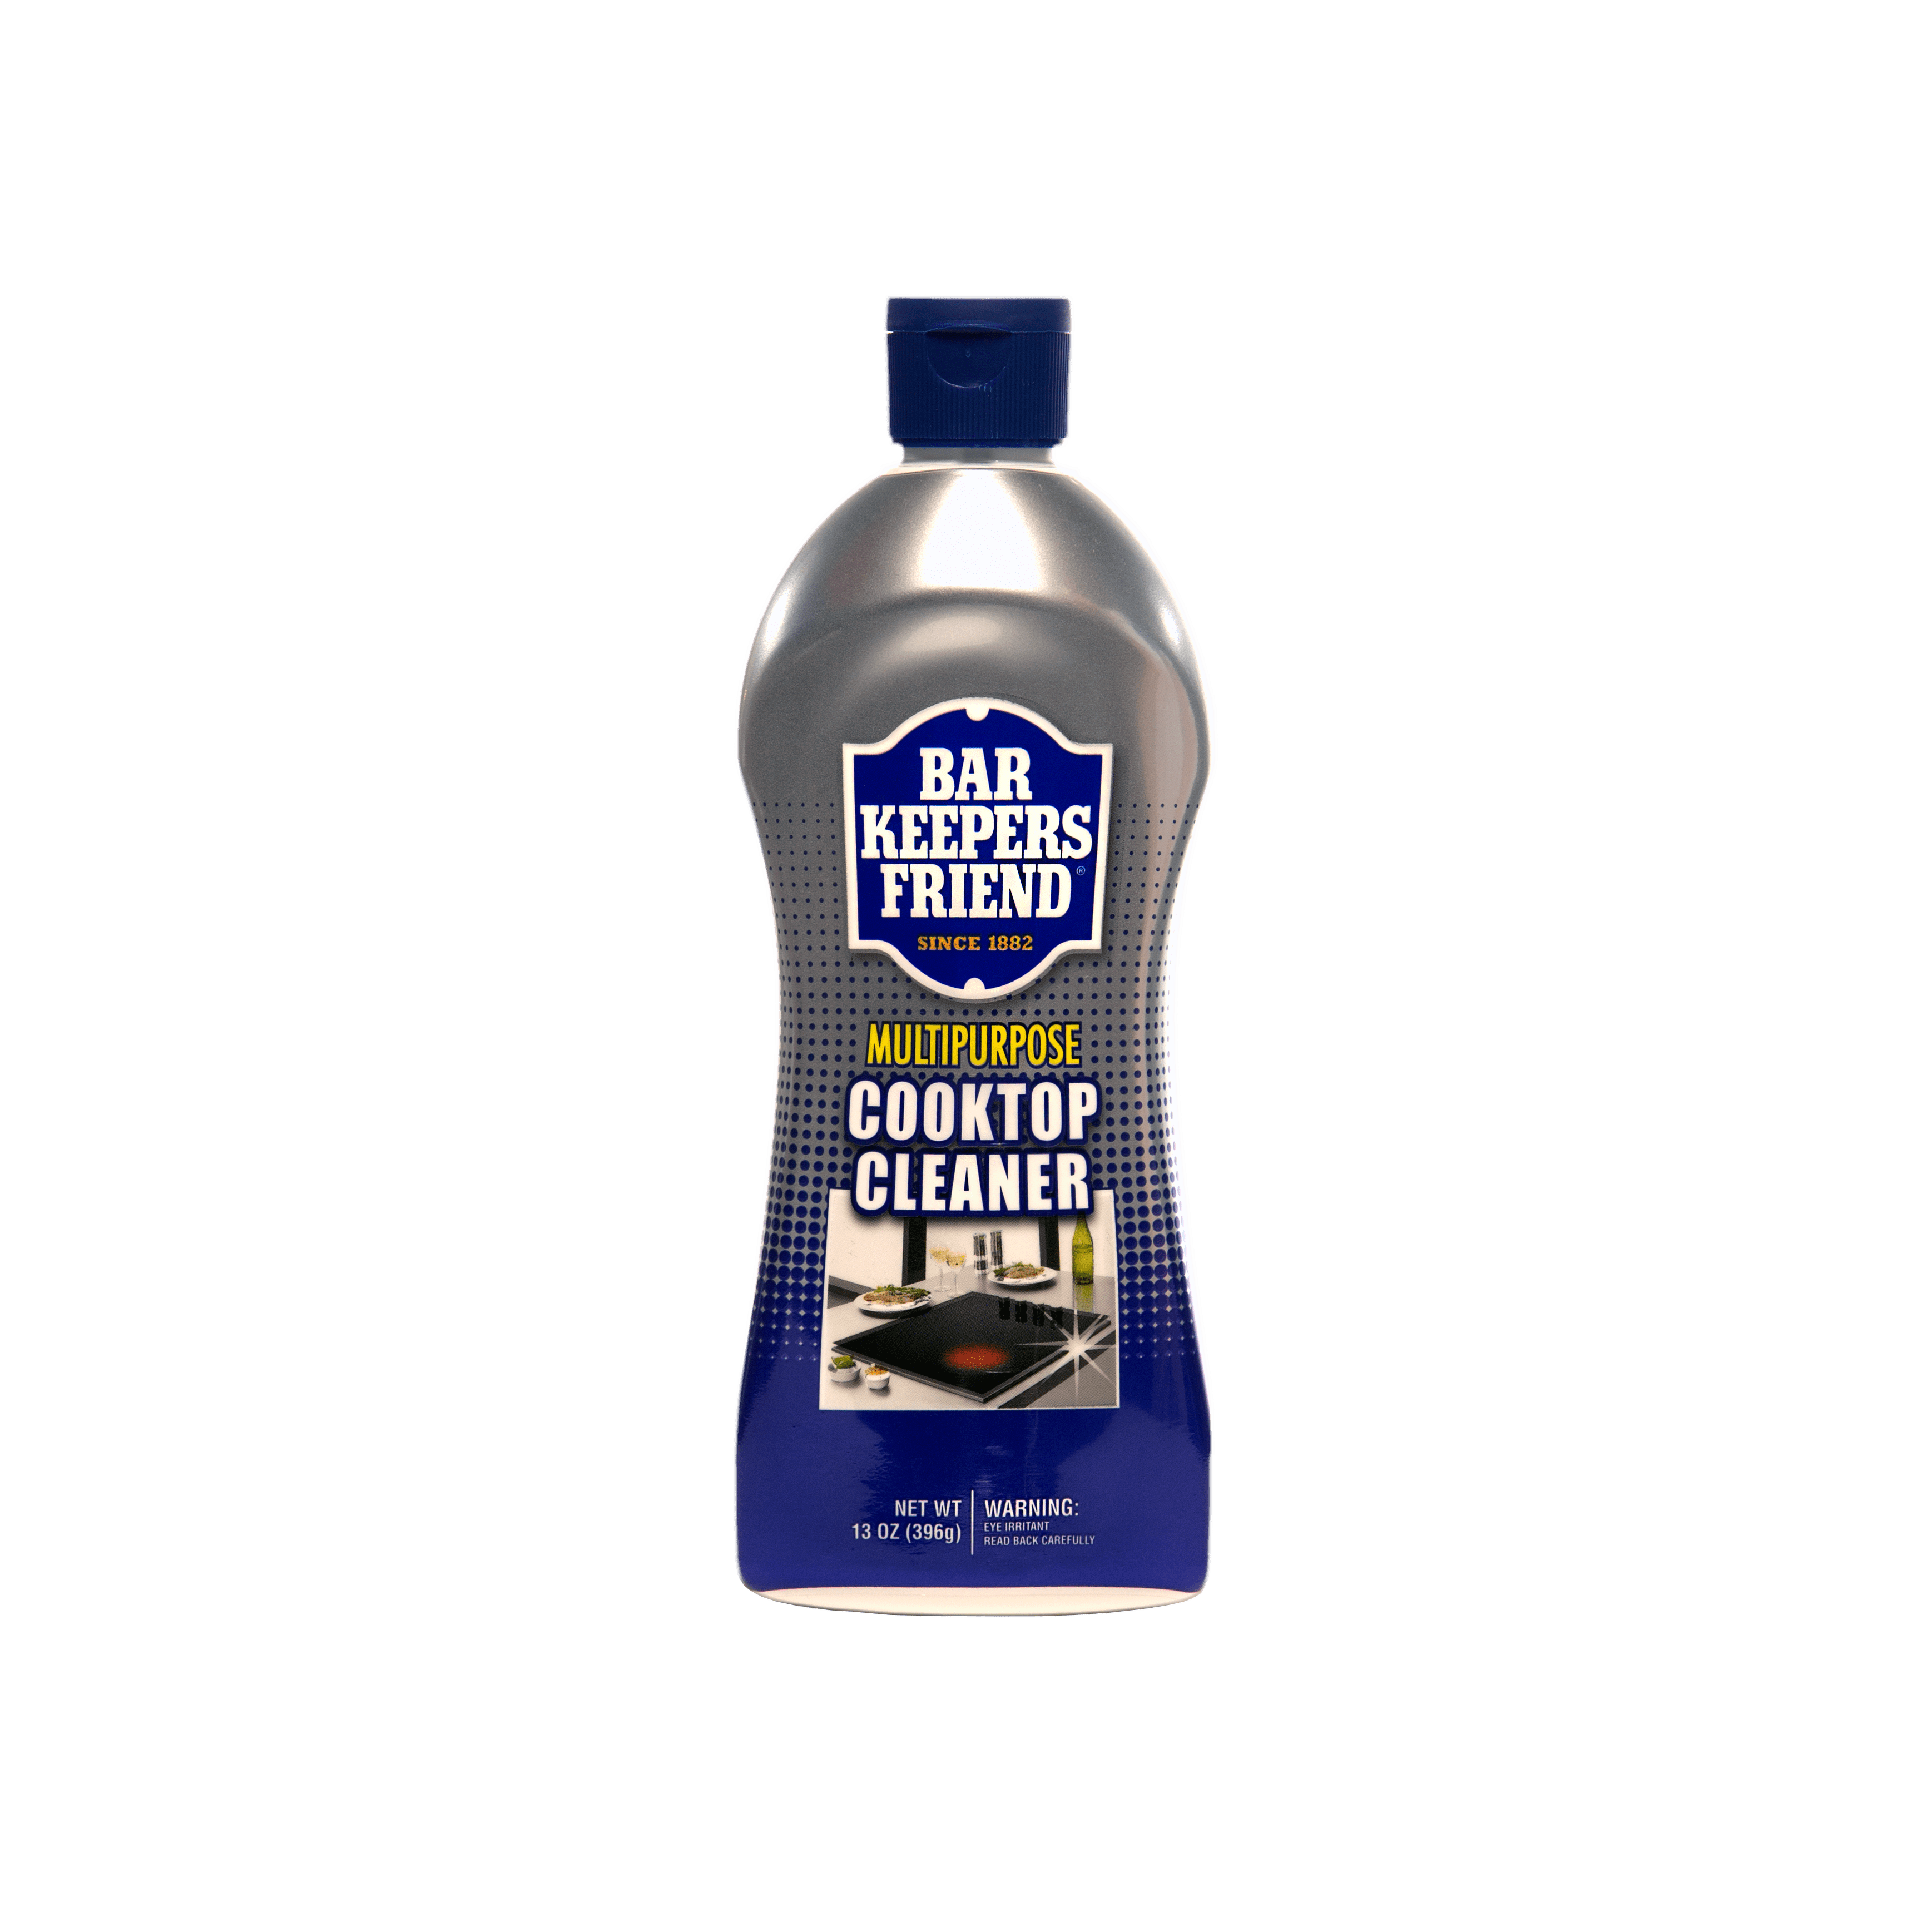 Cooktop Cleaner Cleaning Products